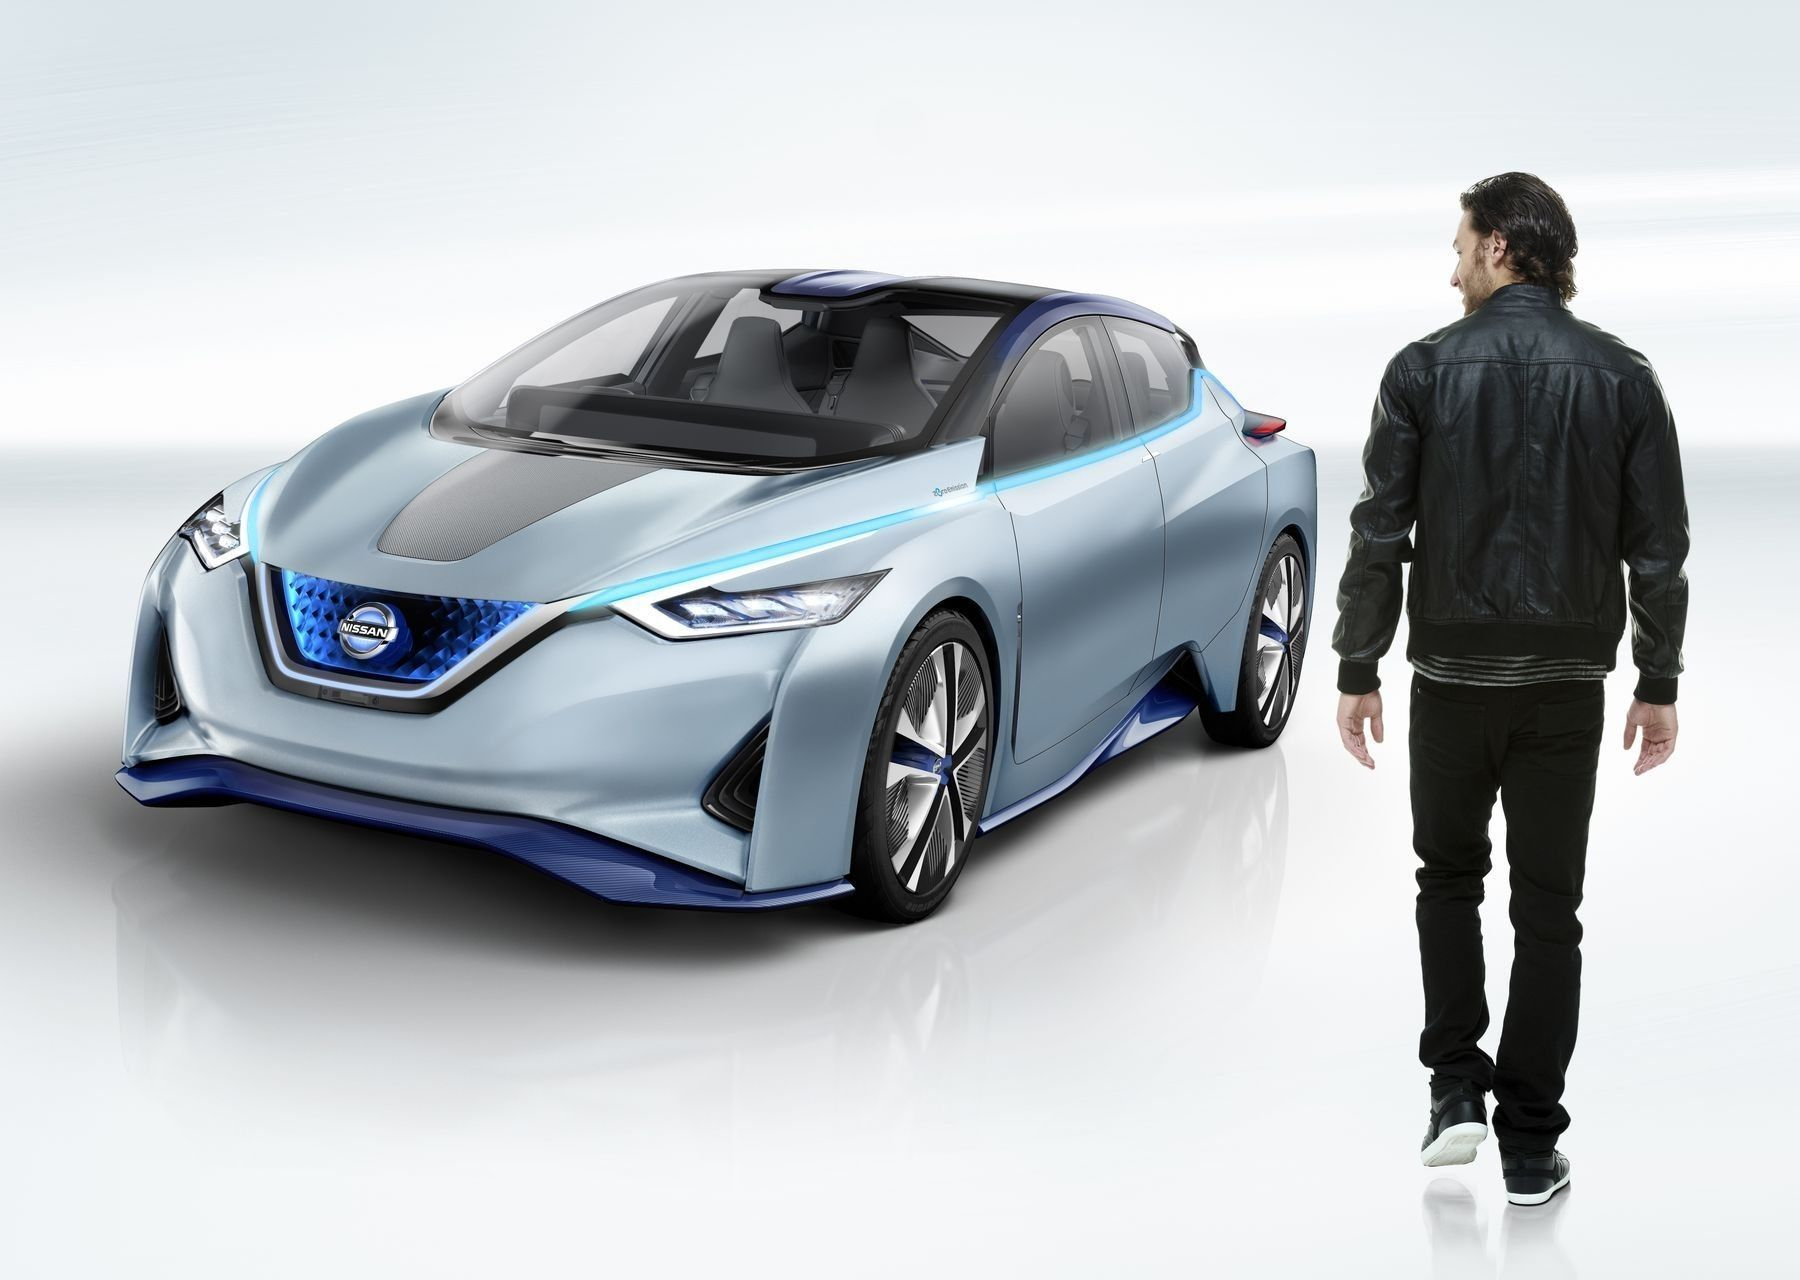 Explore Nissan Leaf 2020 60 Kwh Performance And Technology Features We Reviews The Nissan Leaf 2020 60 Kwh Redesign Where Consu Nissan Leaf Nissan Hybrid Car